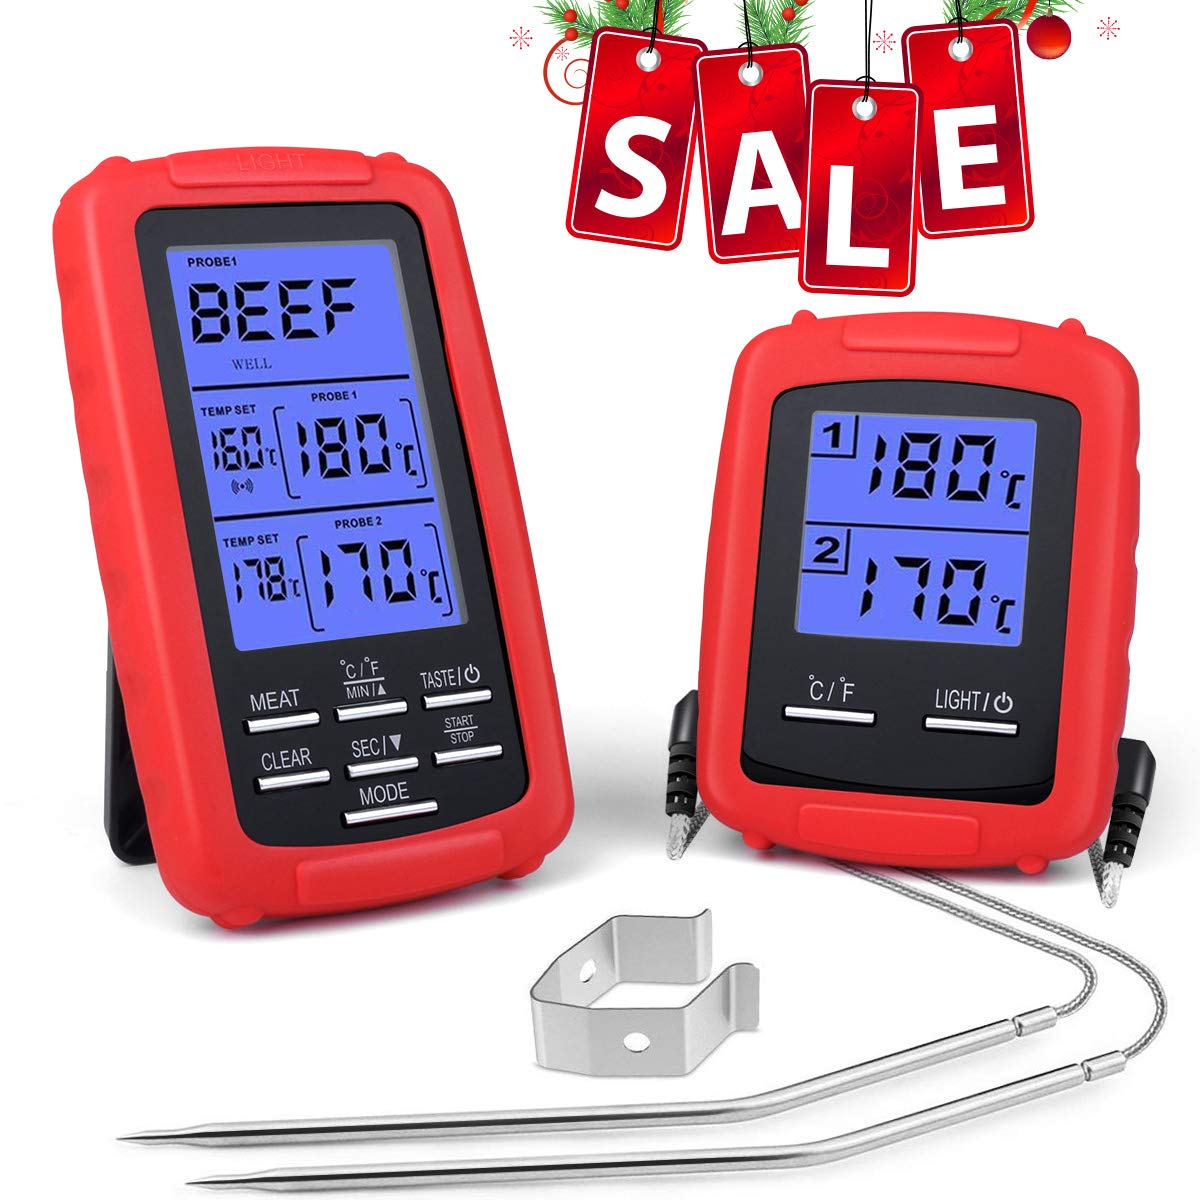 Pansonite Wireless Remote Digital Cooking Food Thermometer Meat Thermometer for Grilling Oven Kitchen Smoker BBQ Grill Thermometer with Dual Probe, 230 Feet Range